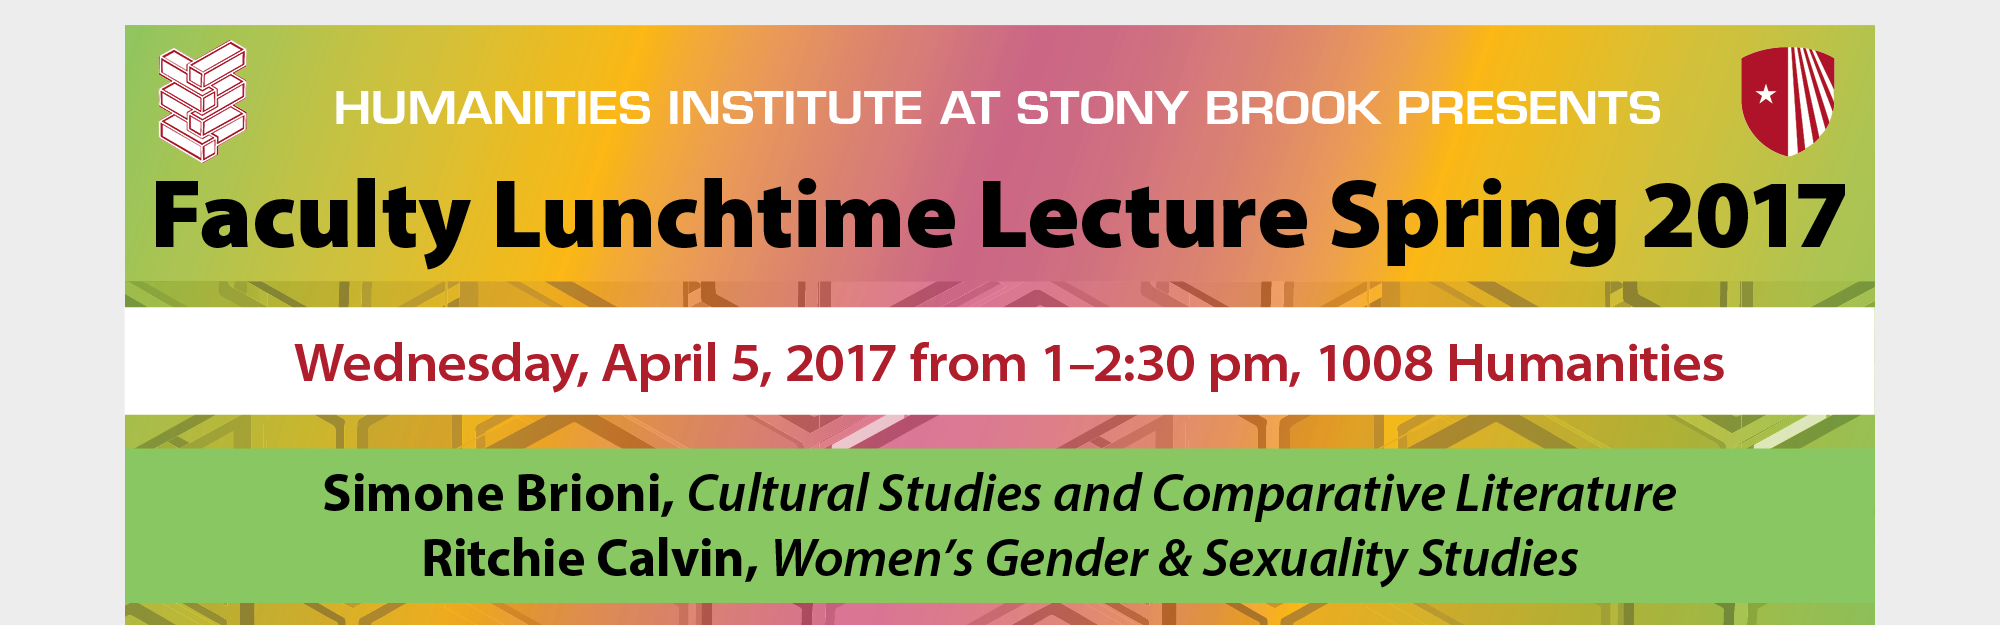 Faculty Lunchtime Lectures Spring 2017